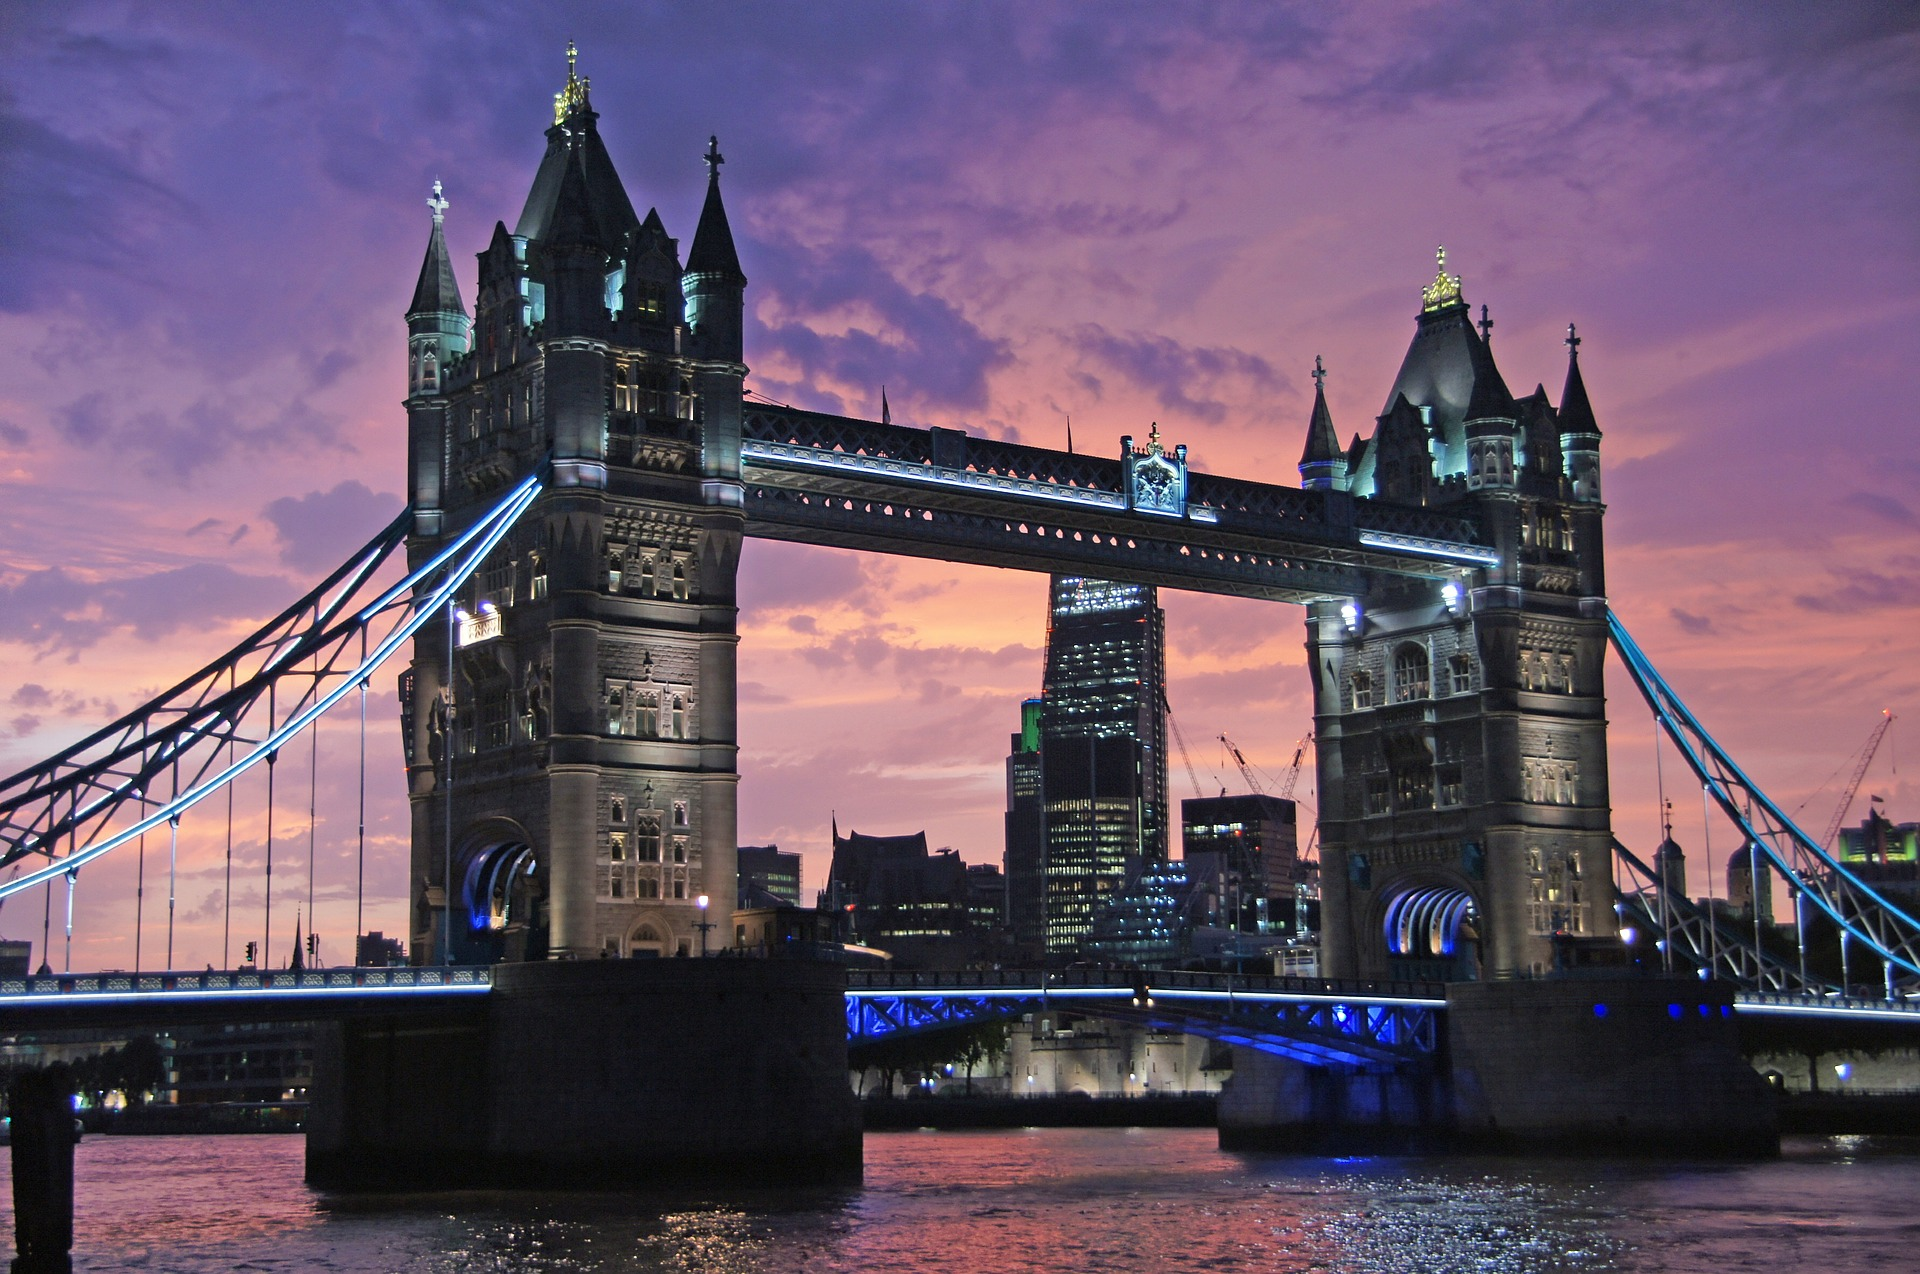 Suggested Travel Itinerary for an Amazing London Holiday